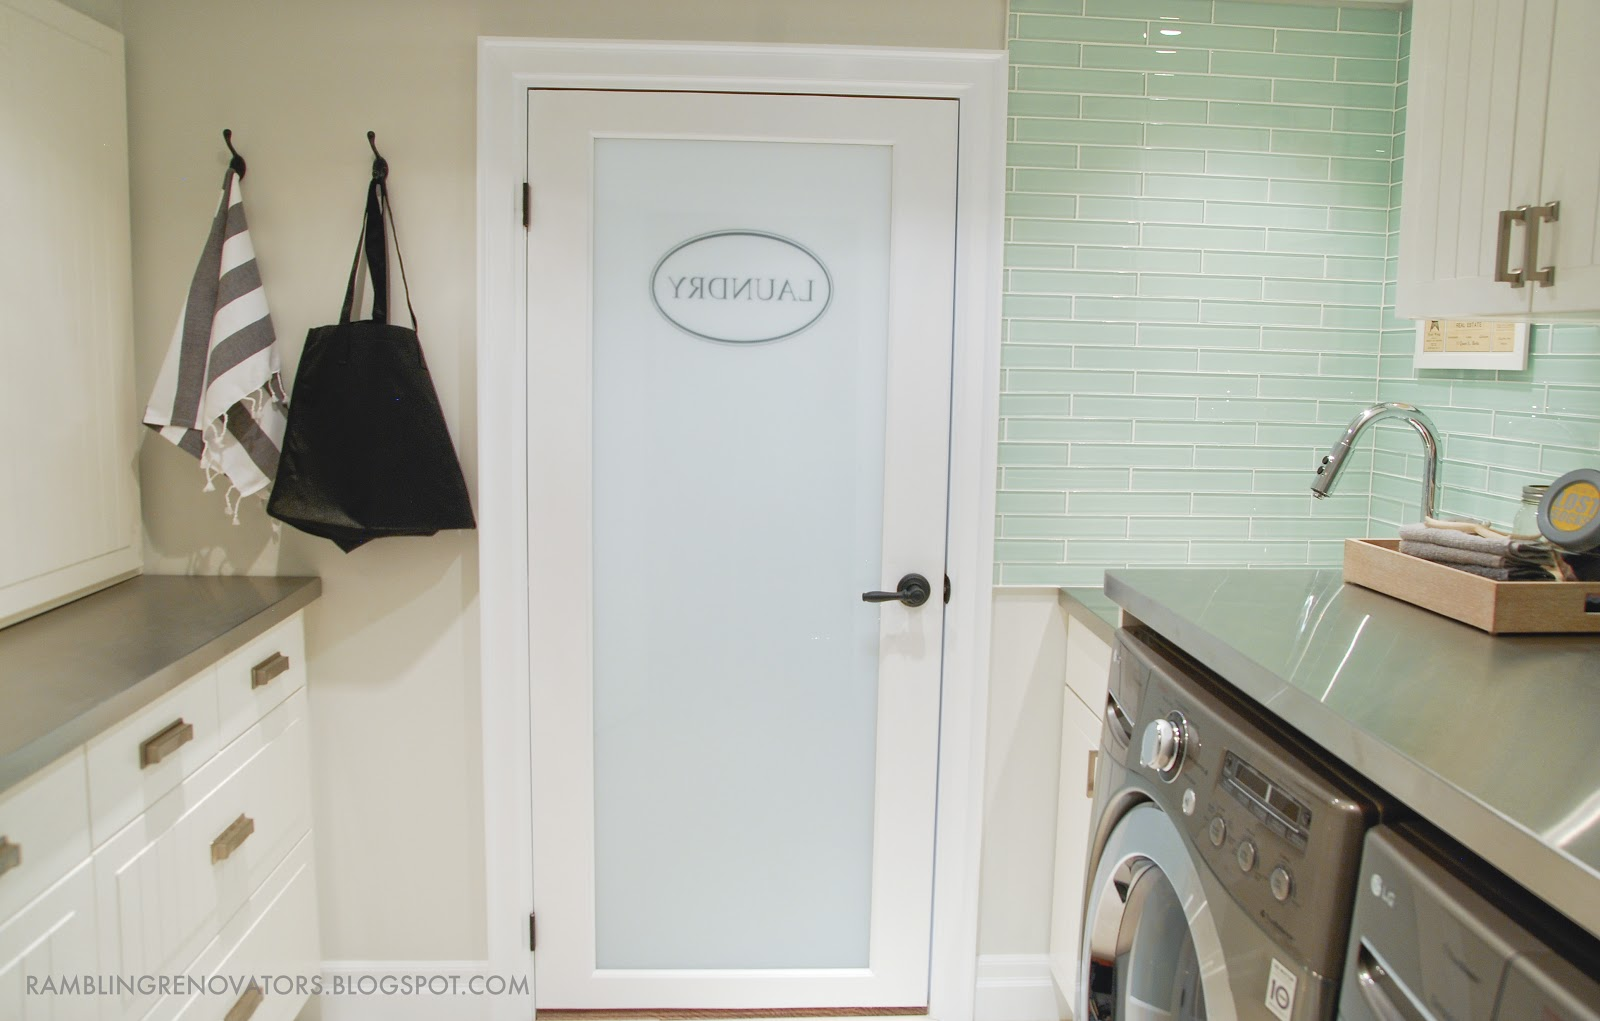 laundry room renovation tips, laundry room cost, budget laundry room ideas